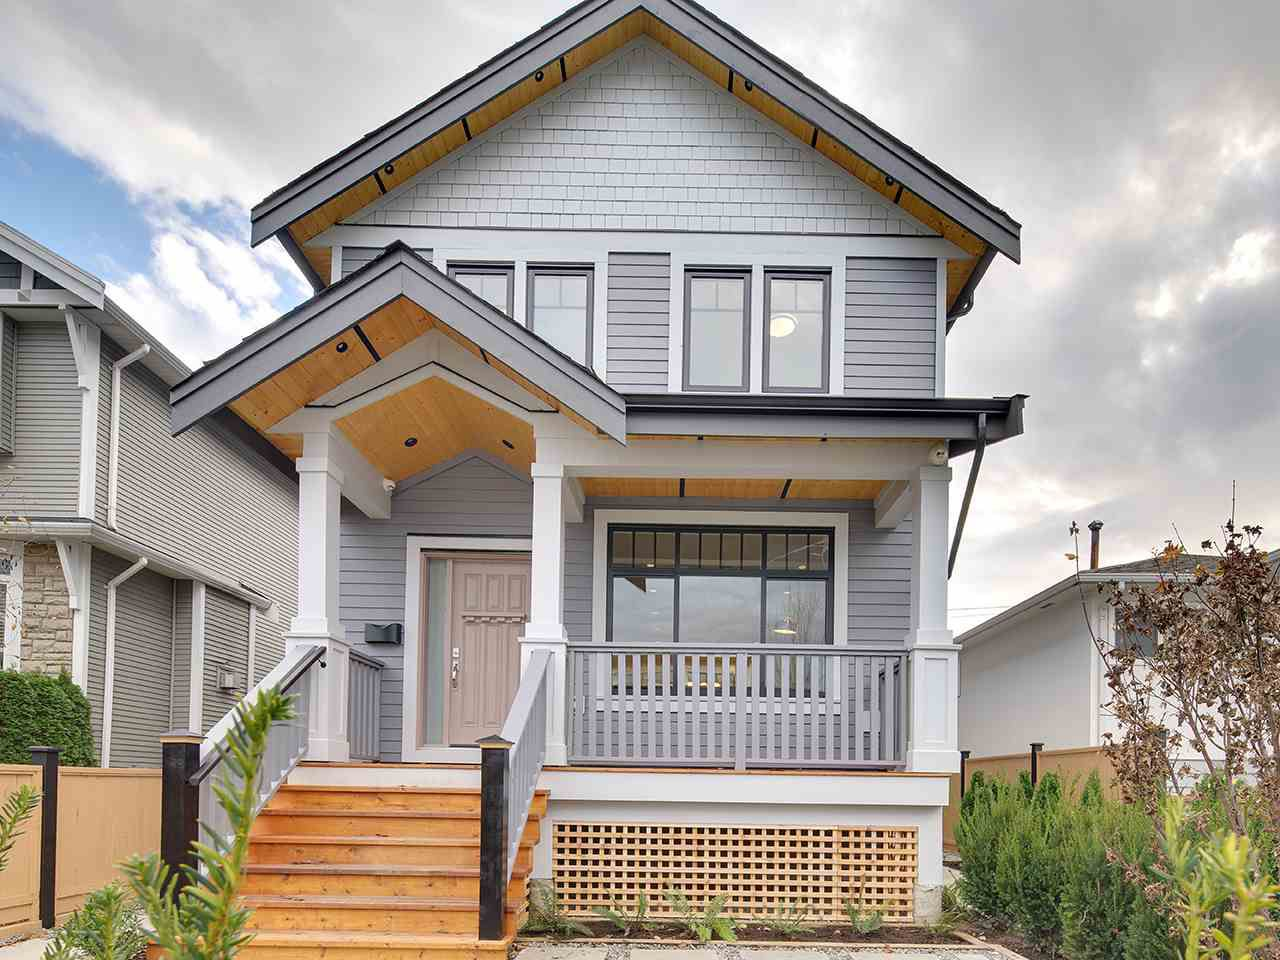 Main Photo: 1522 E PENDER Street in Vancouver: Hastings House 1/2 Duplex for sale (Vancouver East)  : MLS®# R2122104